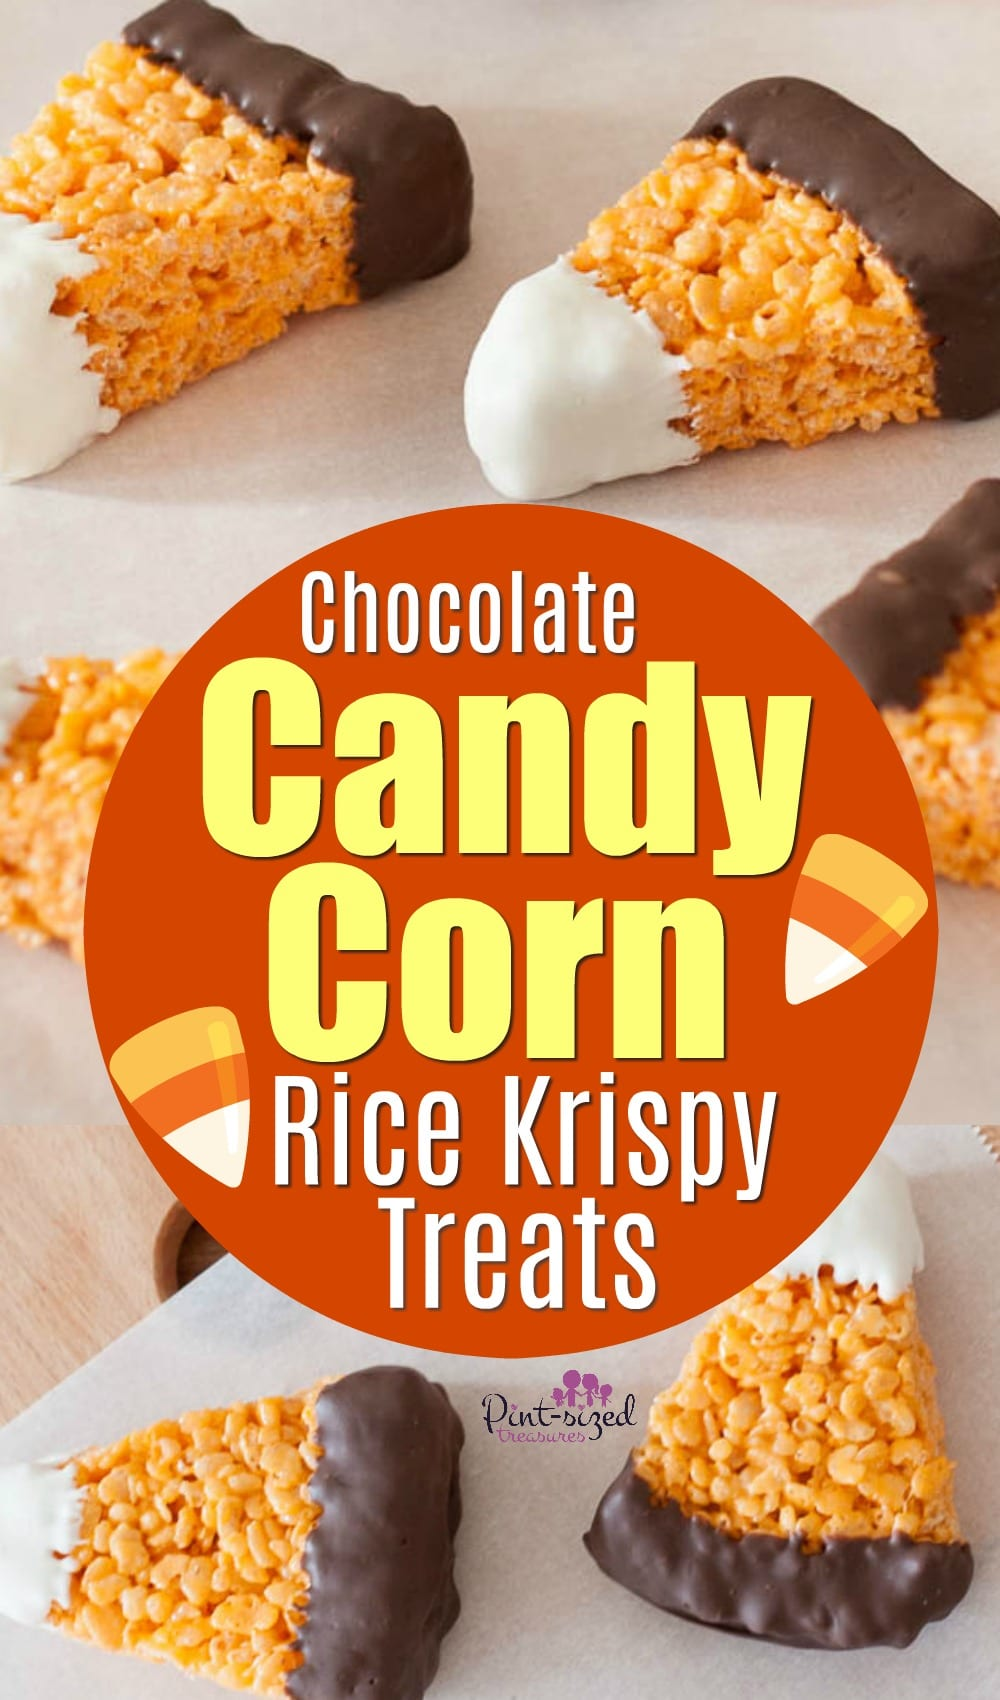 Chocolate Candy Corn Rice Krispie Treats Recipe